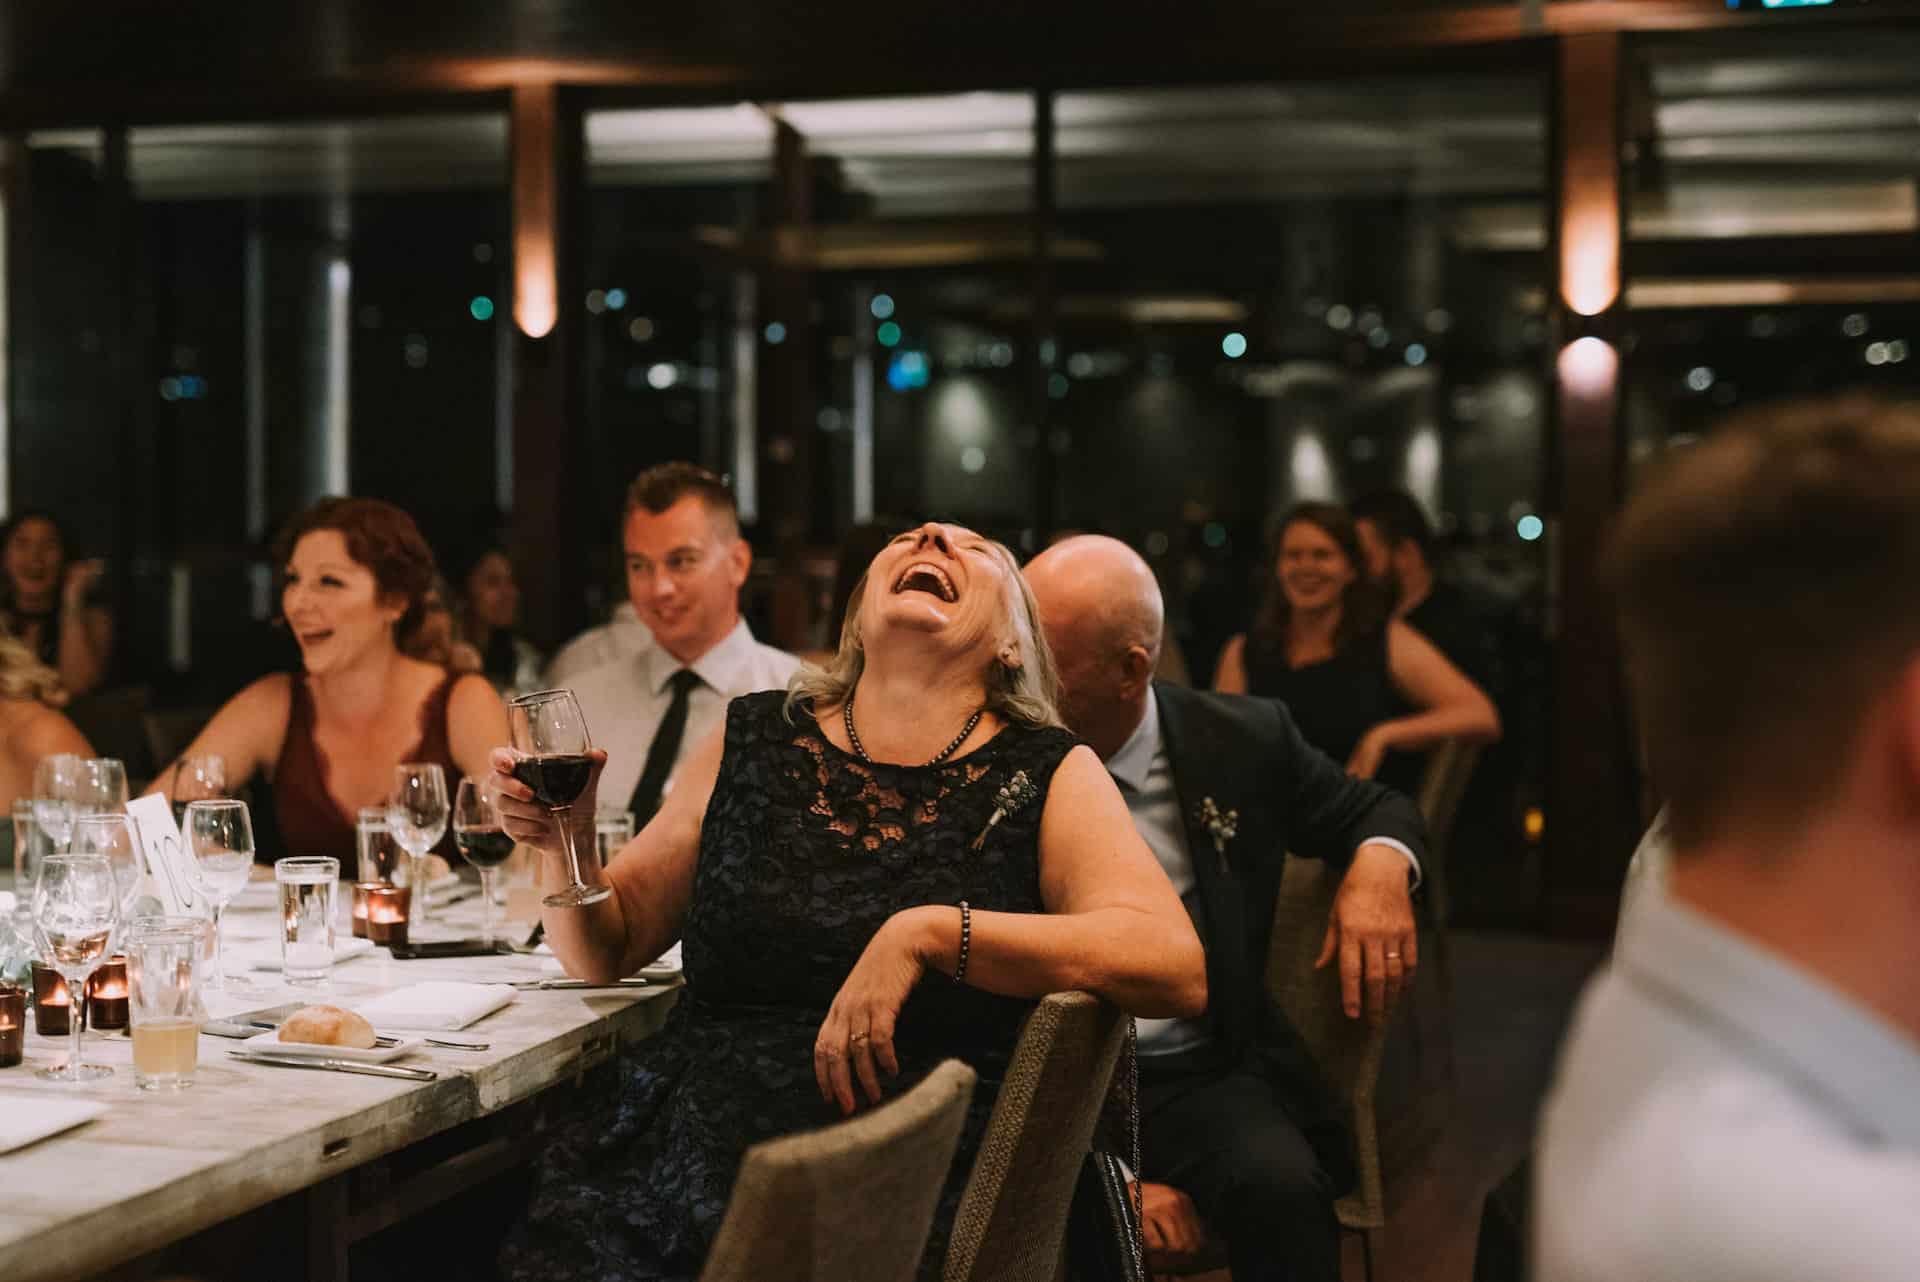 mother of the groom cannot contain her laughter during wedding reception at Zest Waterfront Venues, Mosman | photographed by Angus Porter Photography